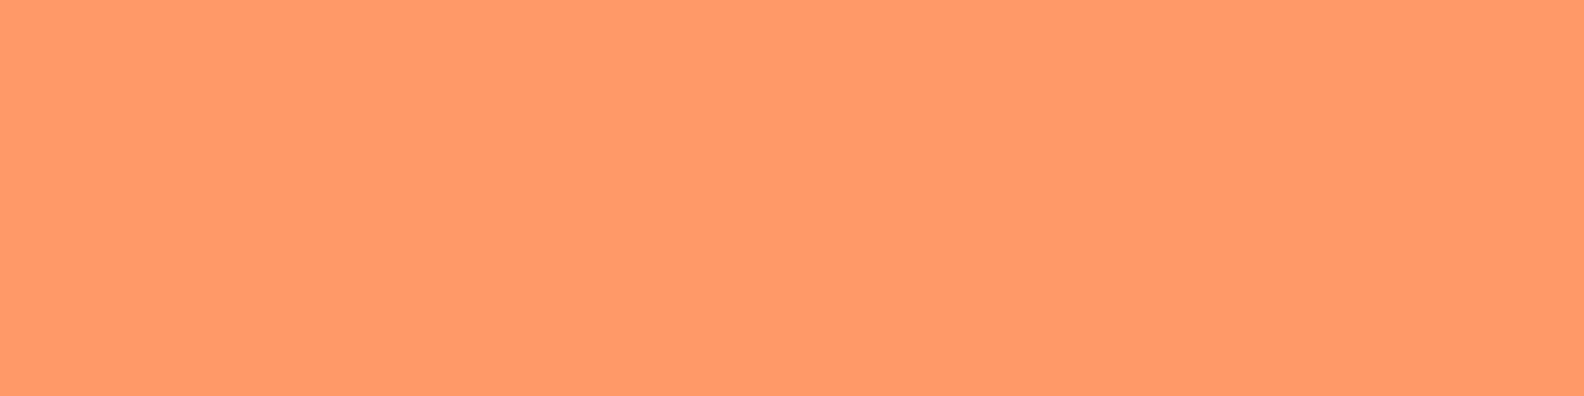 1584x396 Atomic Tangerine Solid Color Background